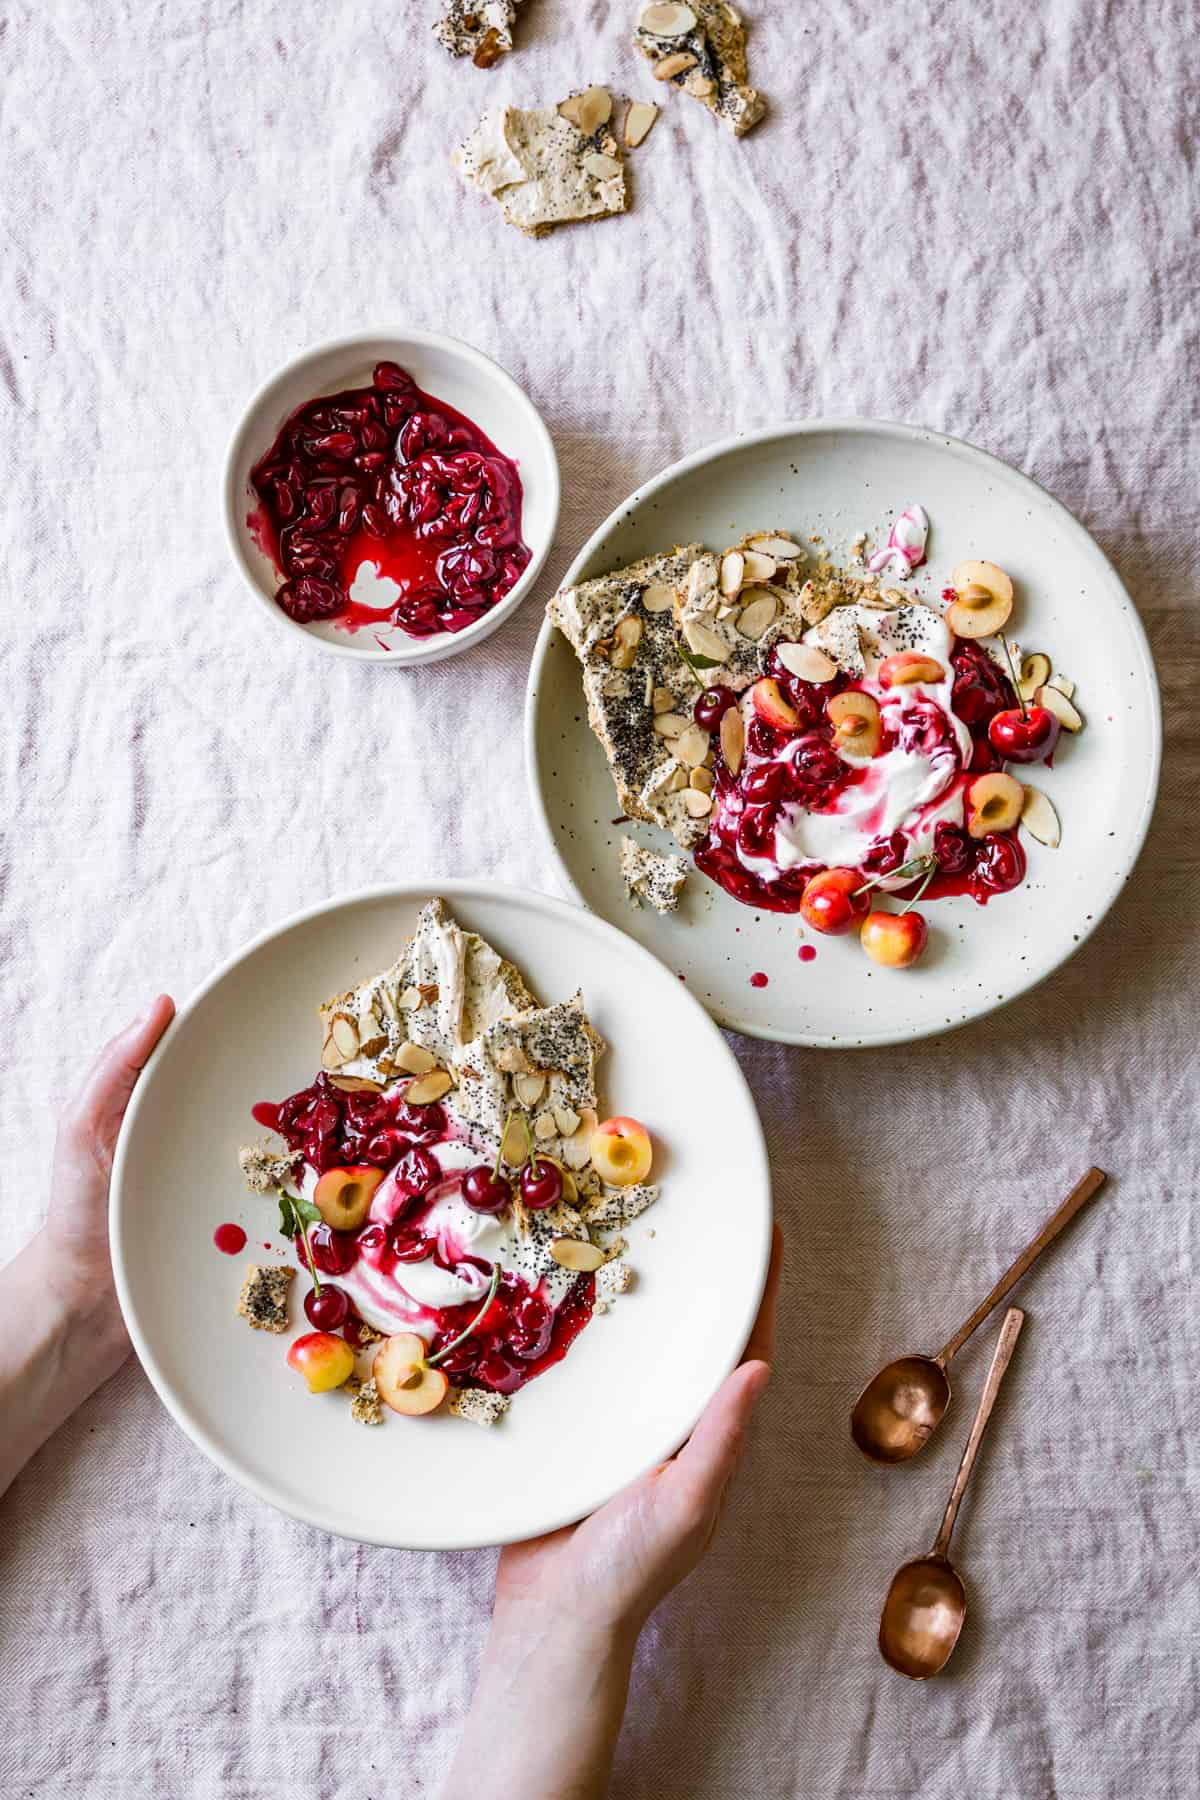 hands holding Tart Cherry Eton Mess with Poppy Seed Almond Meringues